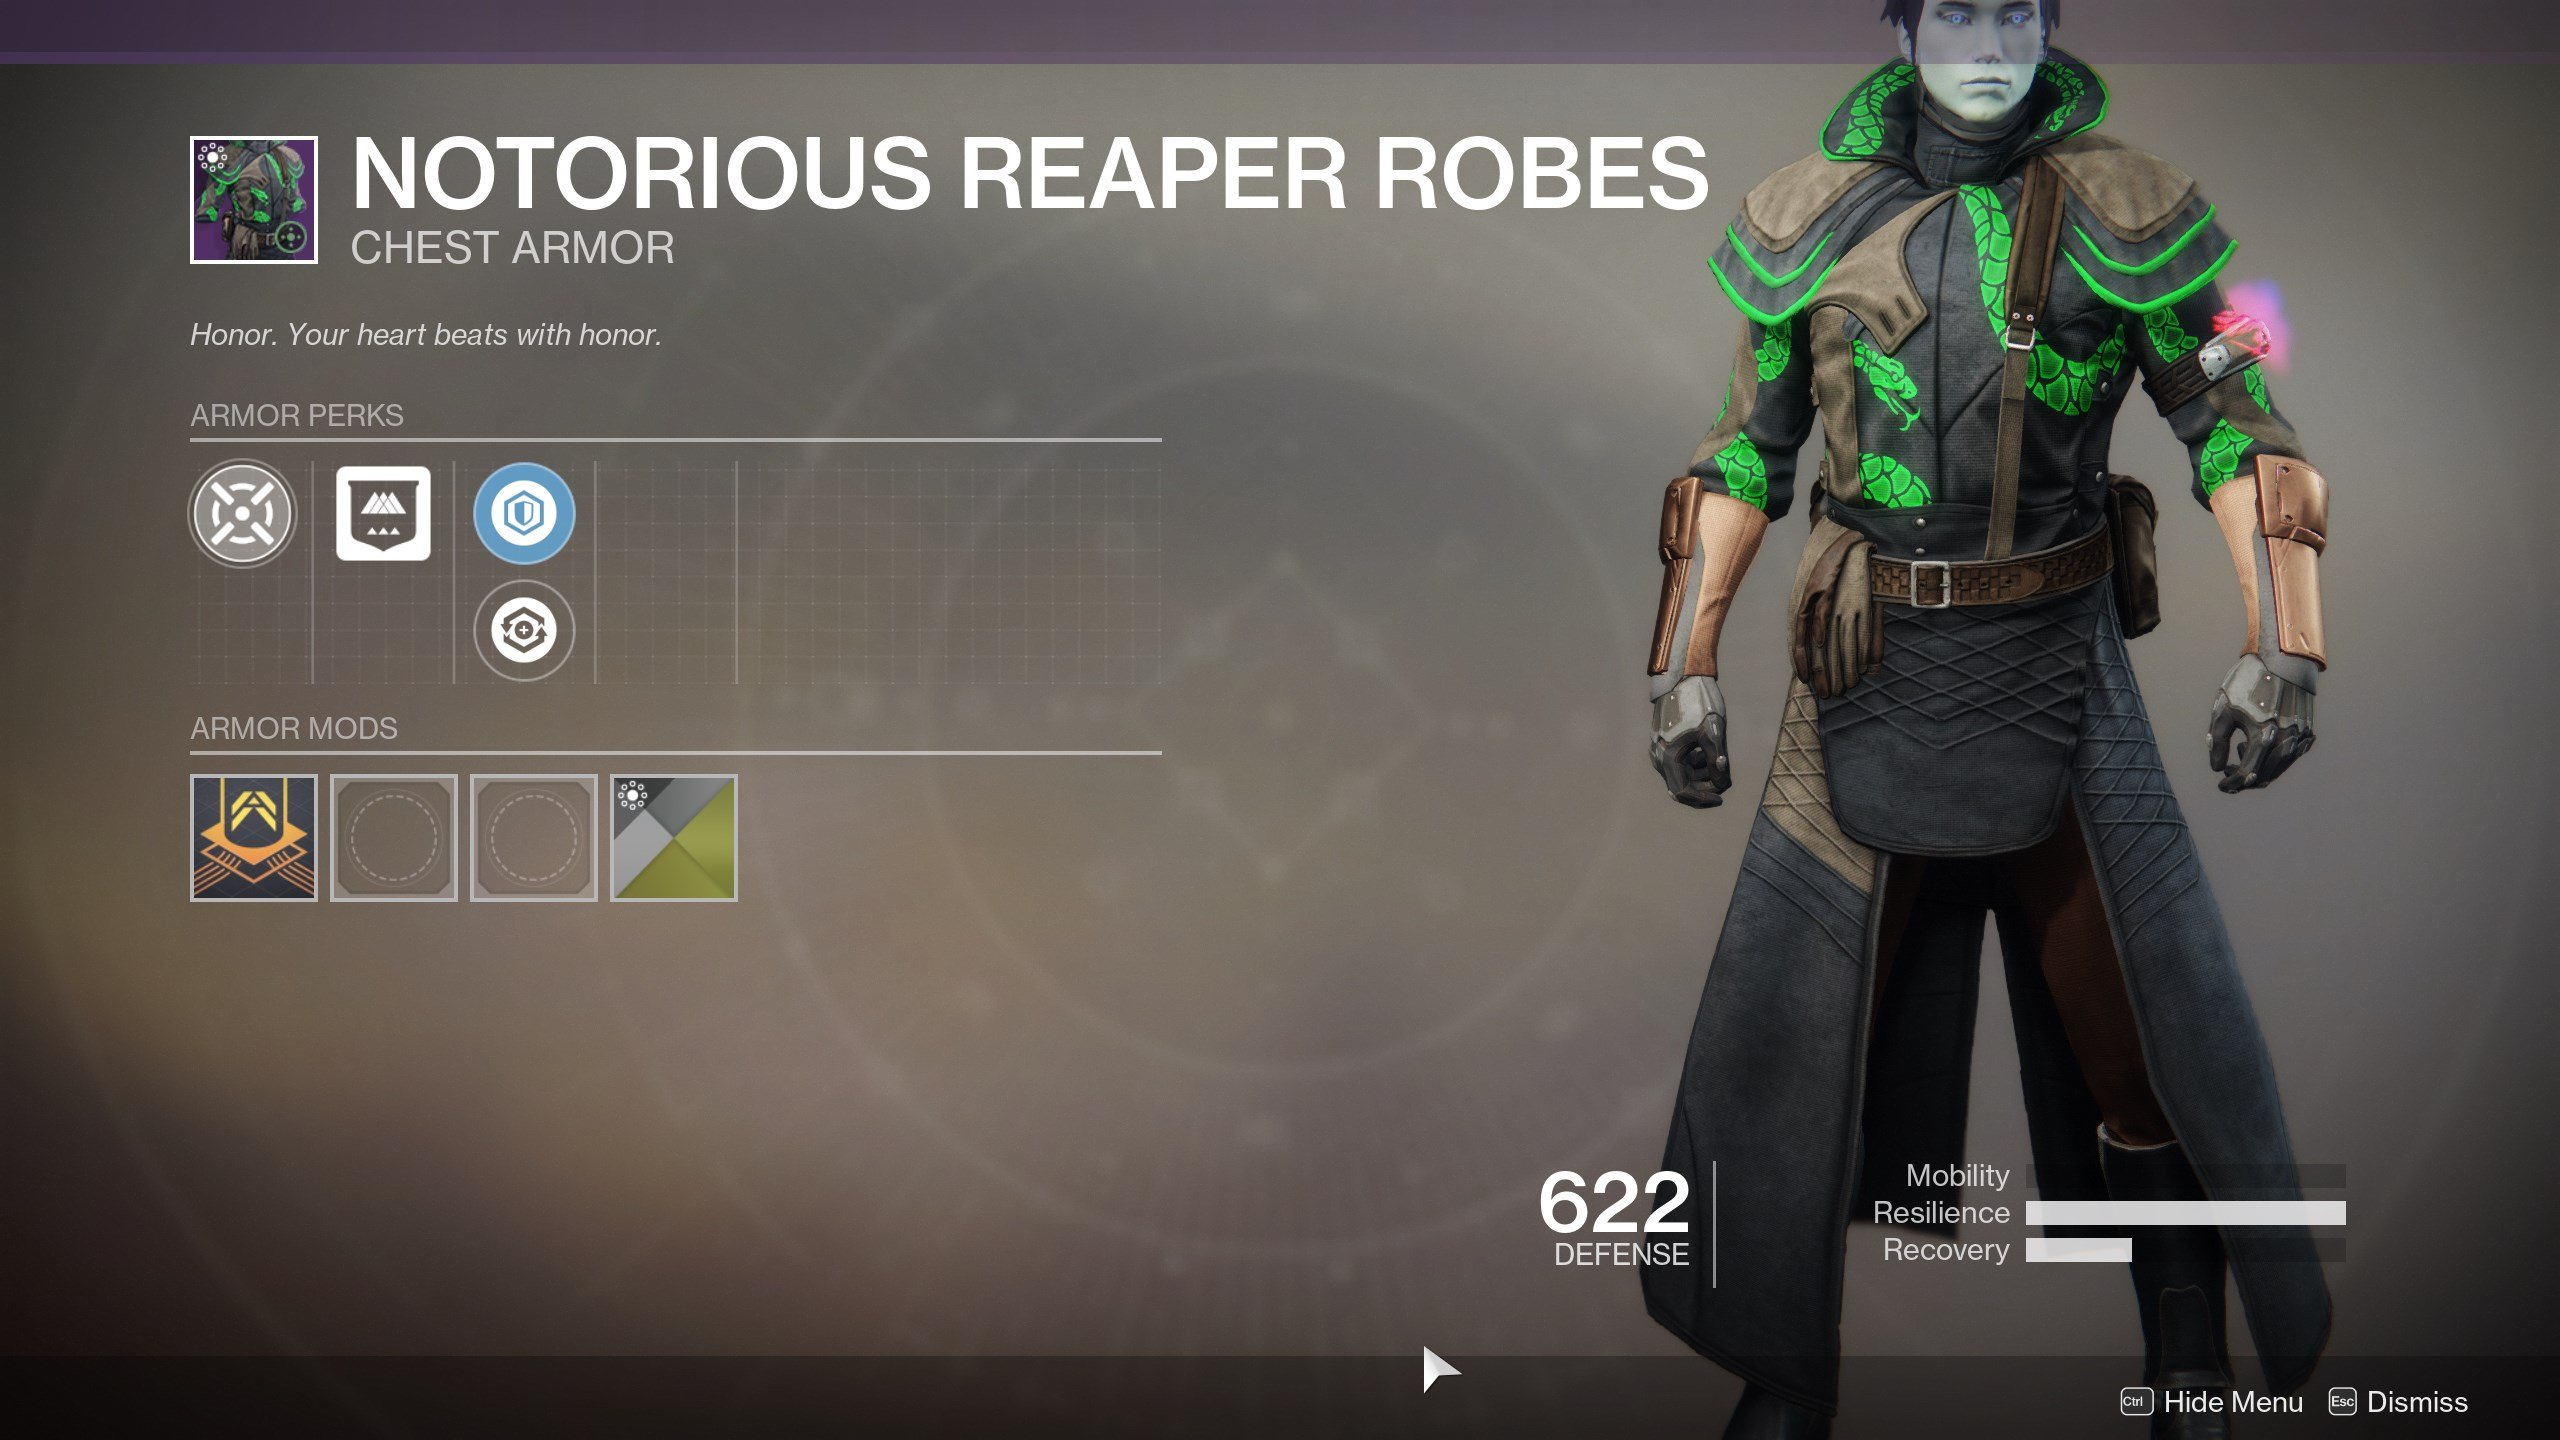 Destiny 2 Notorious Reaper Robes